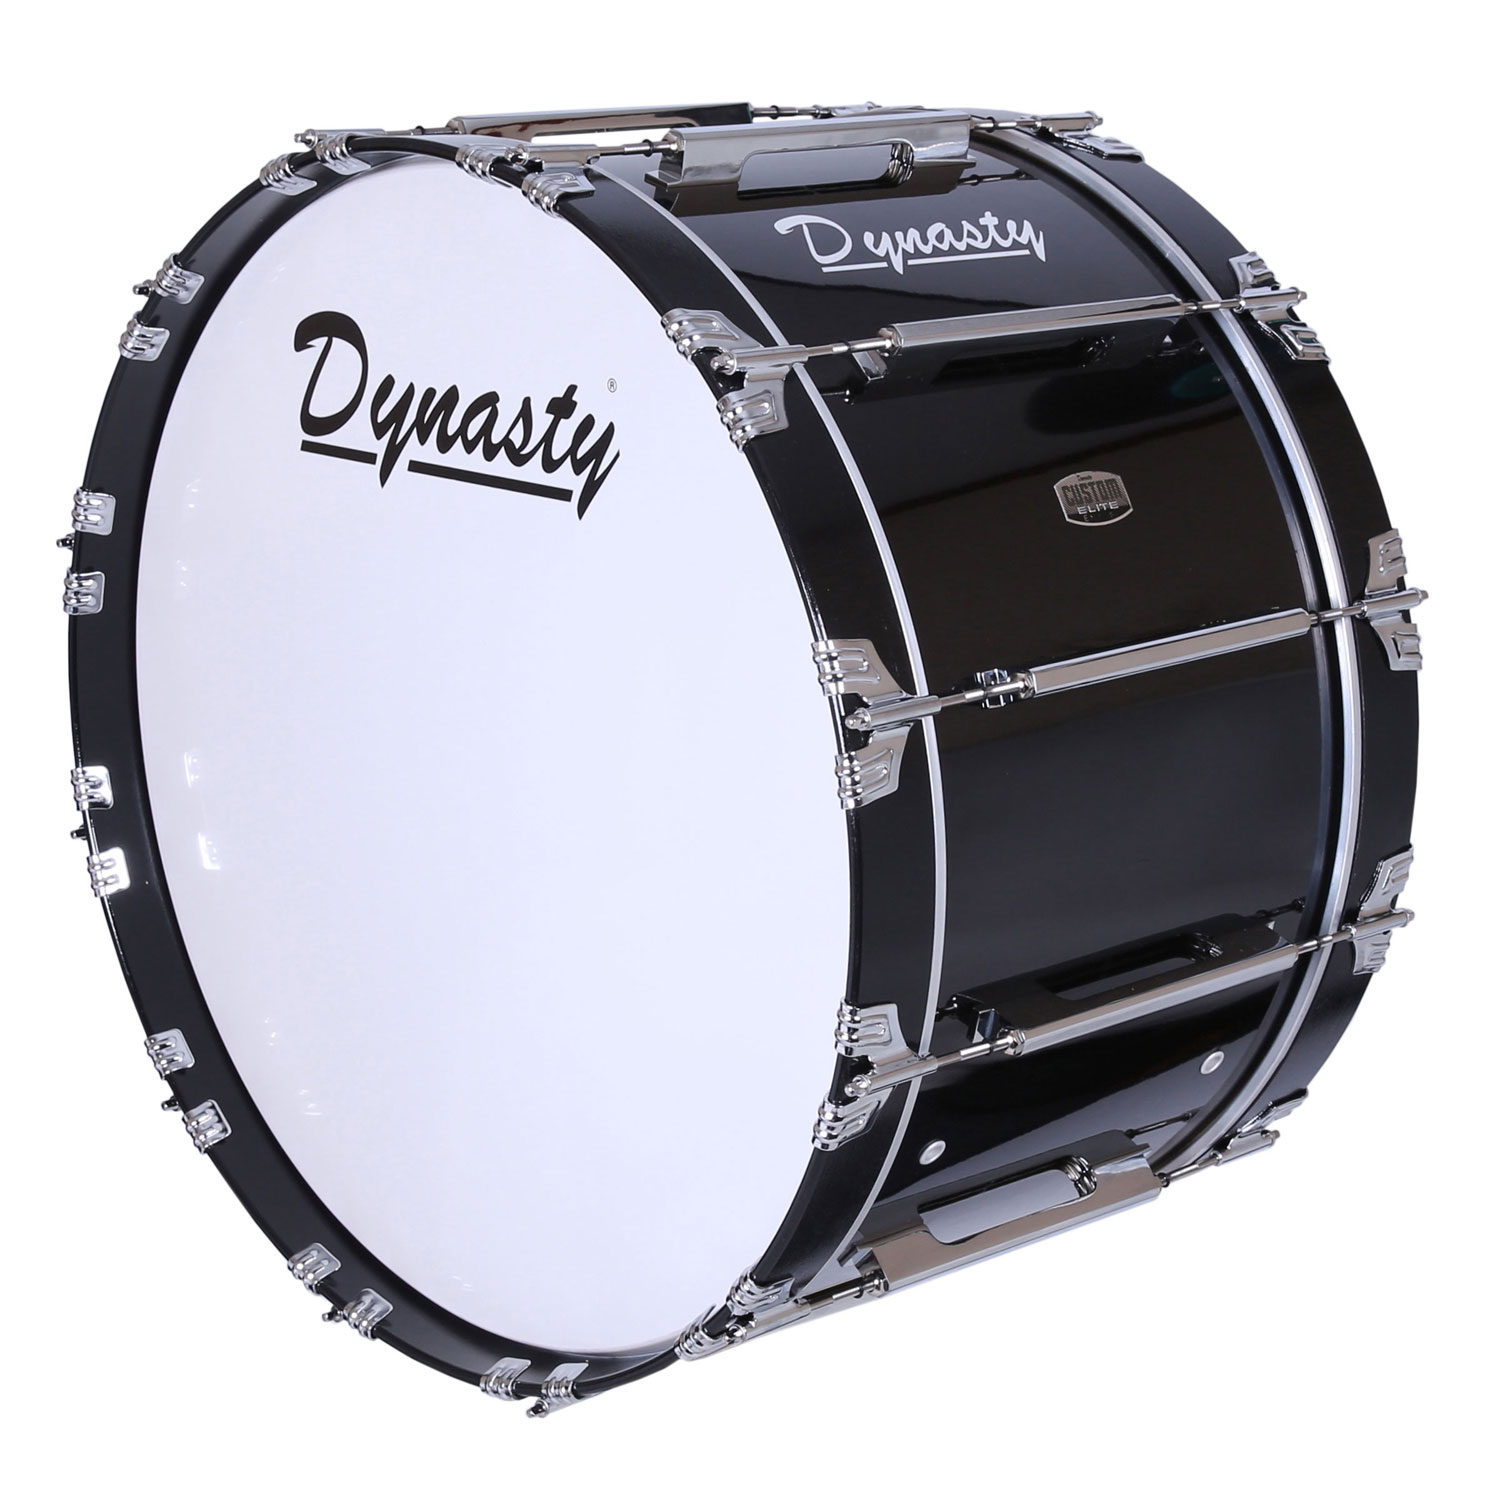 "Dynasty 30"" Custom Elite Marching Bass Drum in Black/Chrome"